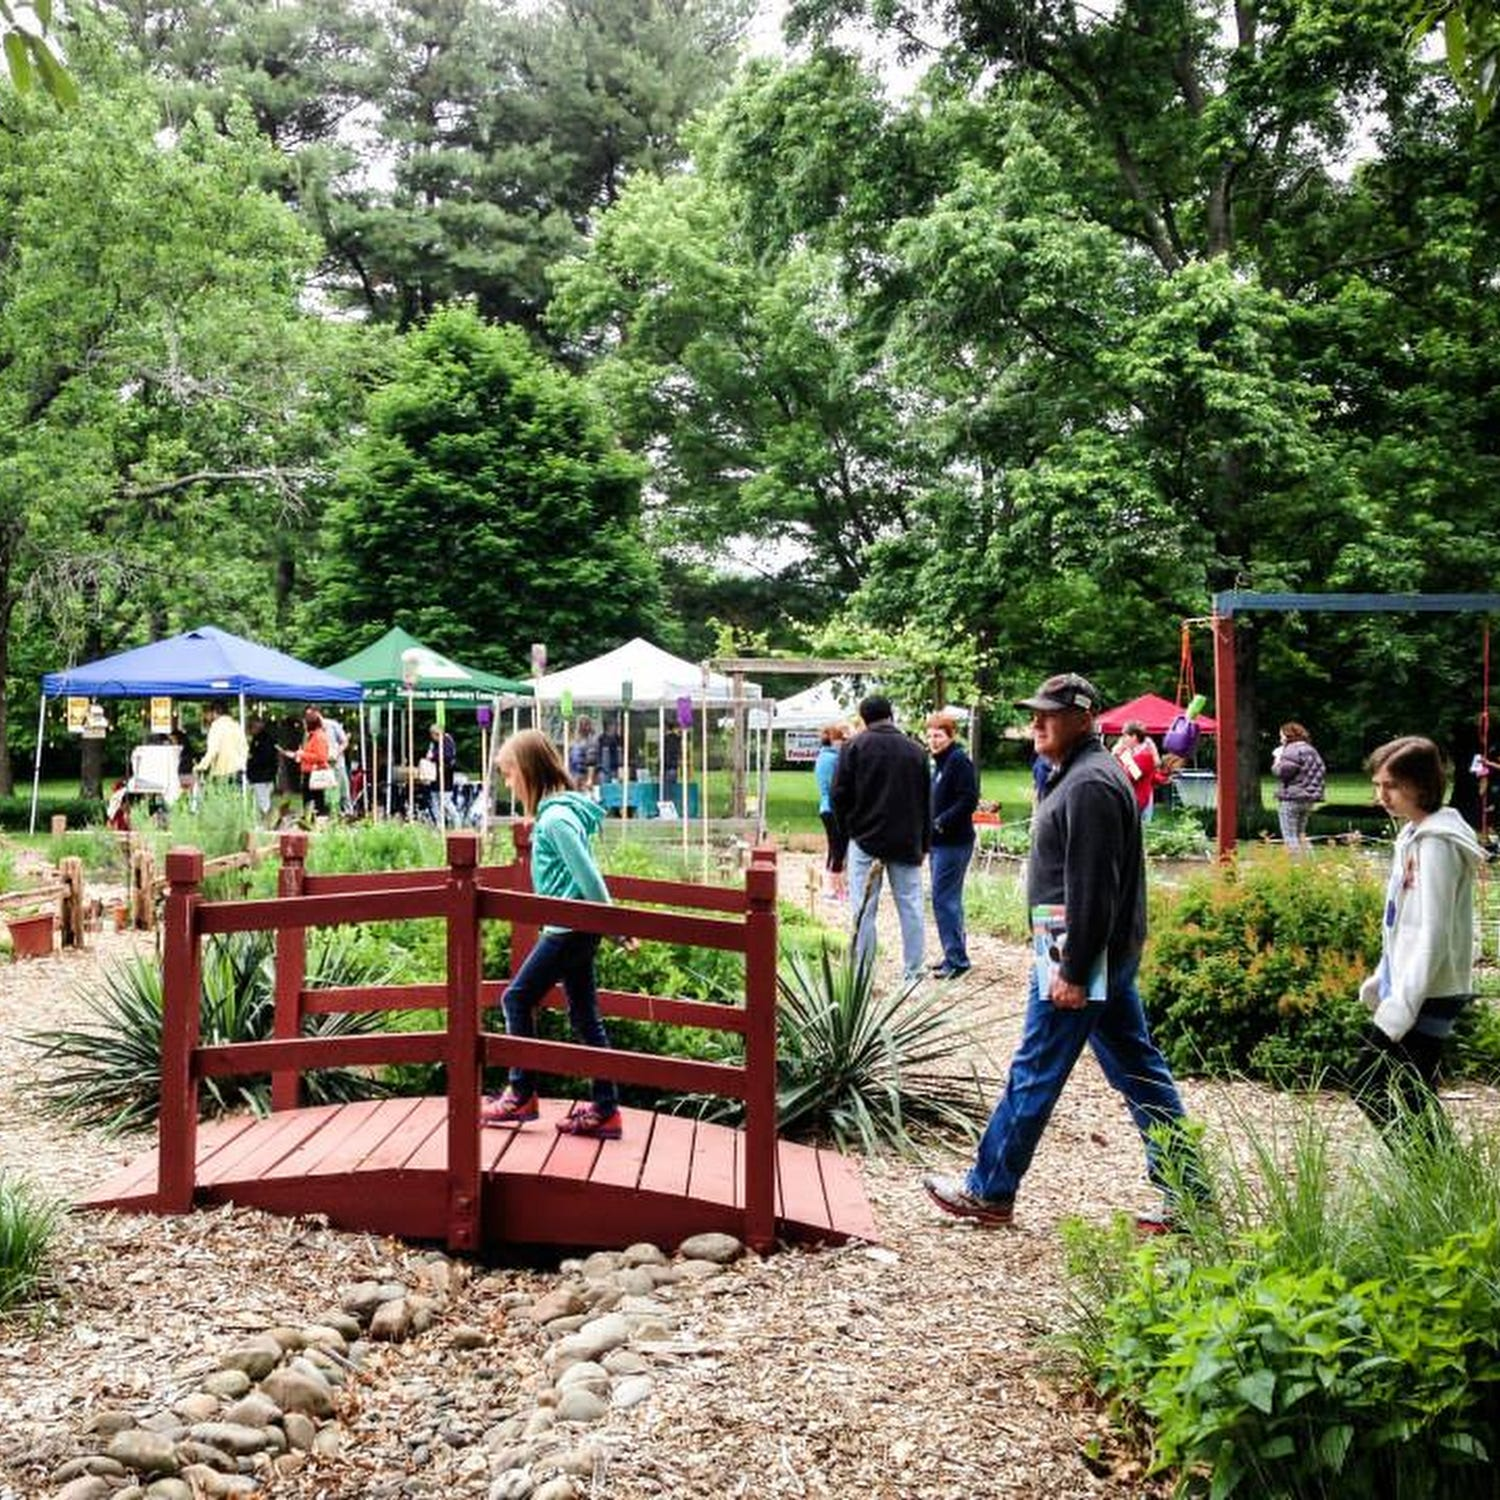 Free things to do in Nashville this weekend: Gardening festival, Musicians Corner and more